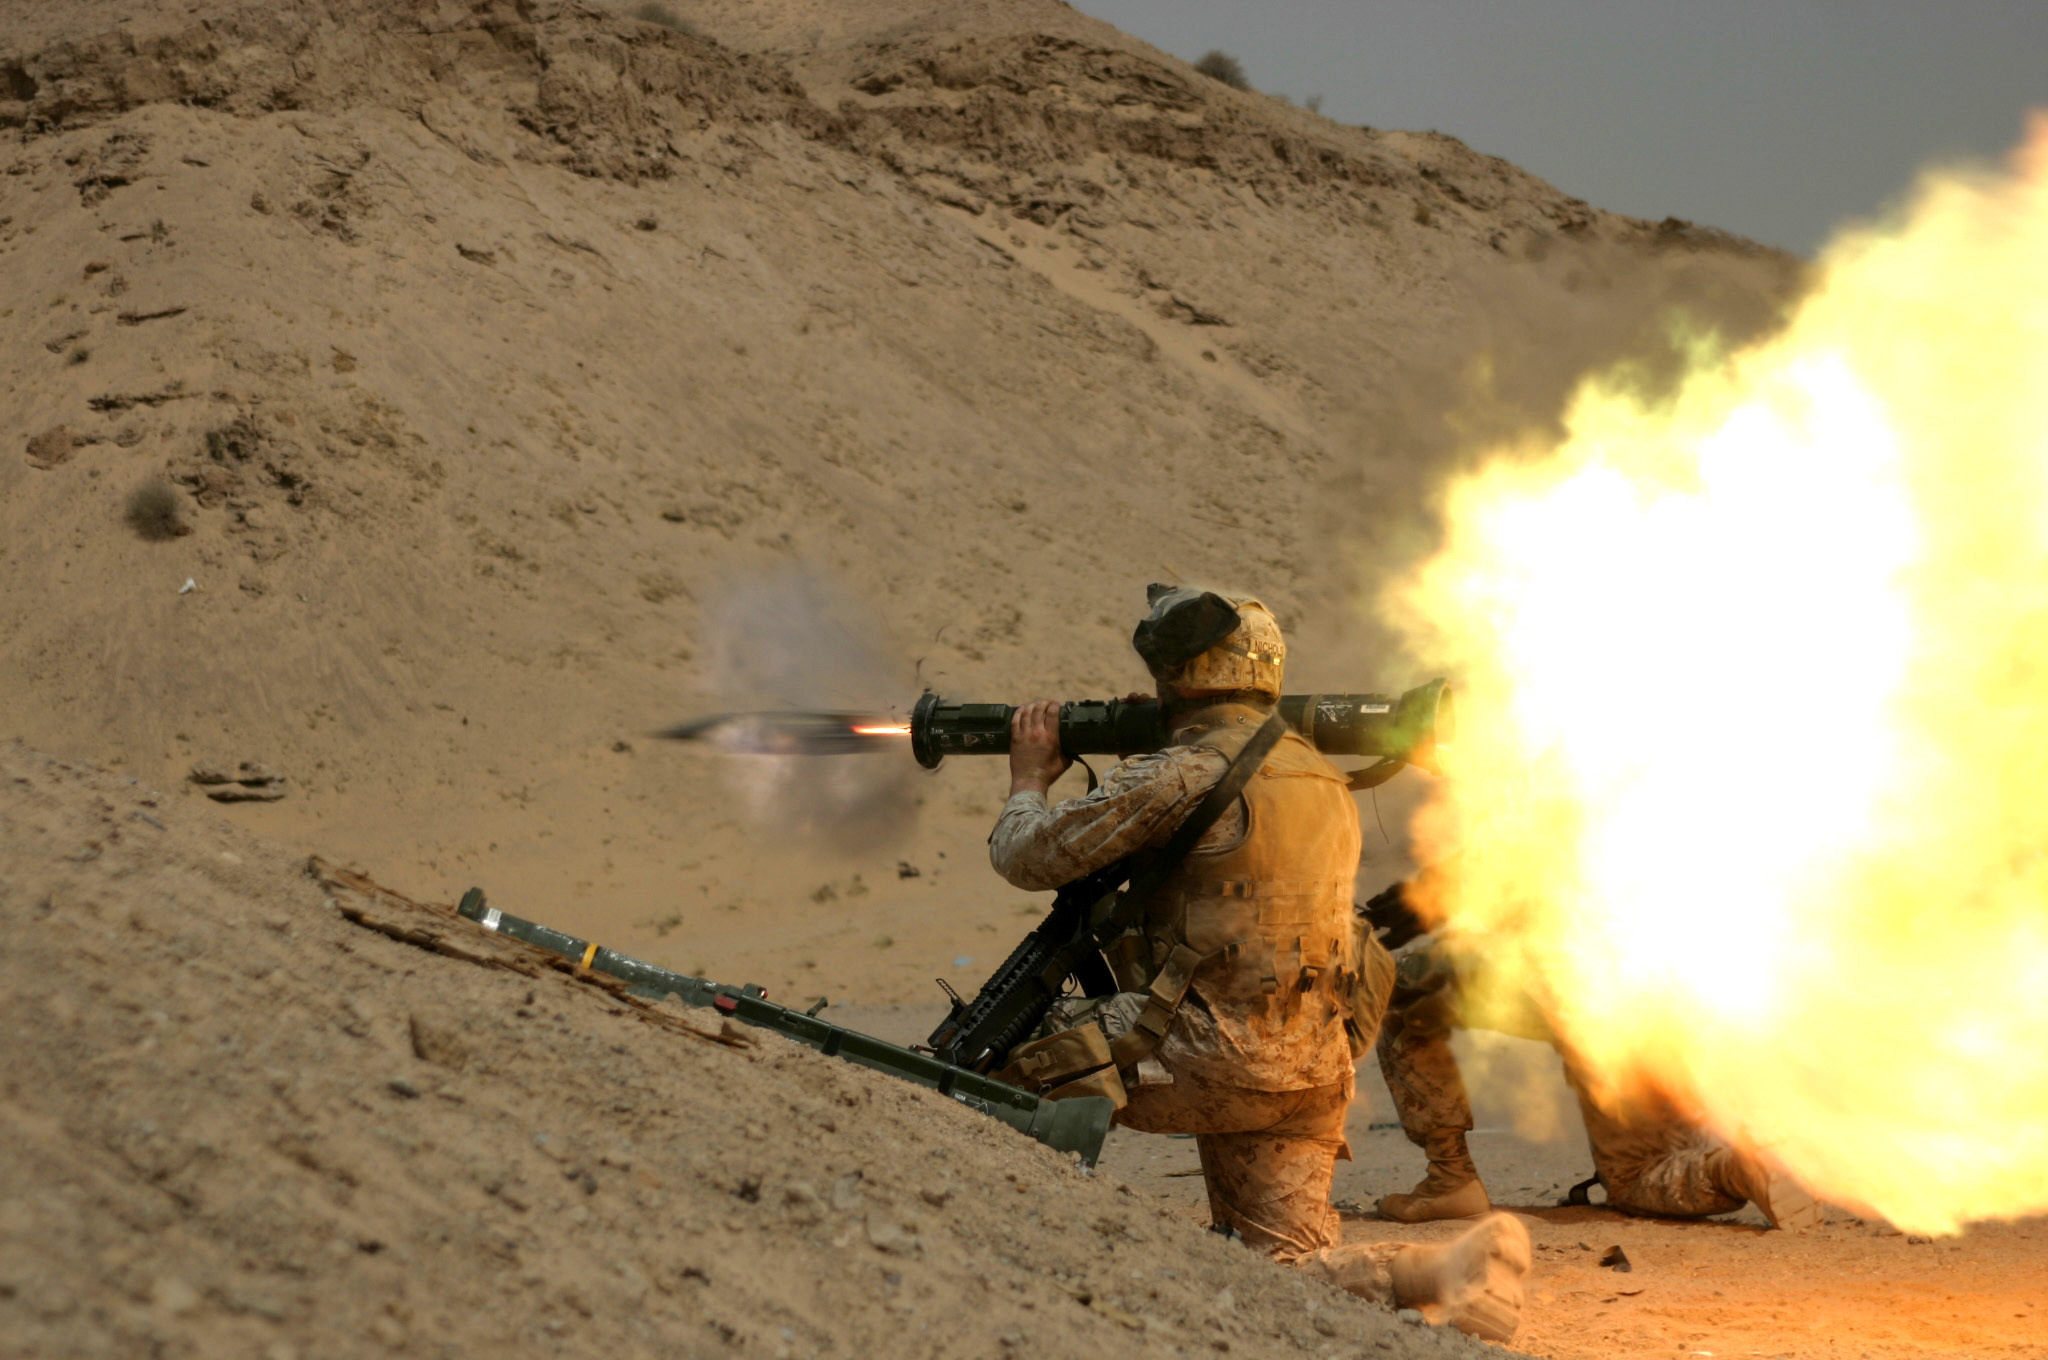 050718-M-1195M-121  Marine Lance Cpl. Gary R. Nichols fires an AT-4 light anti-armor weapon at an old tank during fire and maneuver training near Camp Bucca, Iraq, on July 18, 2005. Nichols and his fellow Marines of the 26th Marine Expeditionary Unit (Special Operations Capable) are operating out of Camp Bucca to conduct various force protection missions.  DoD photo by Cpl. Eric R. Martin, U.S. Marine Corps.  (Released)